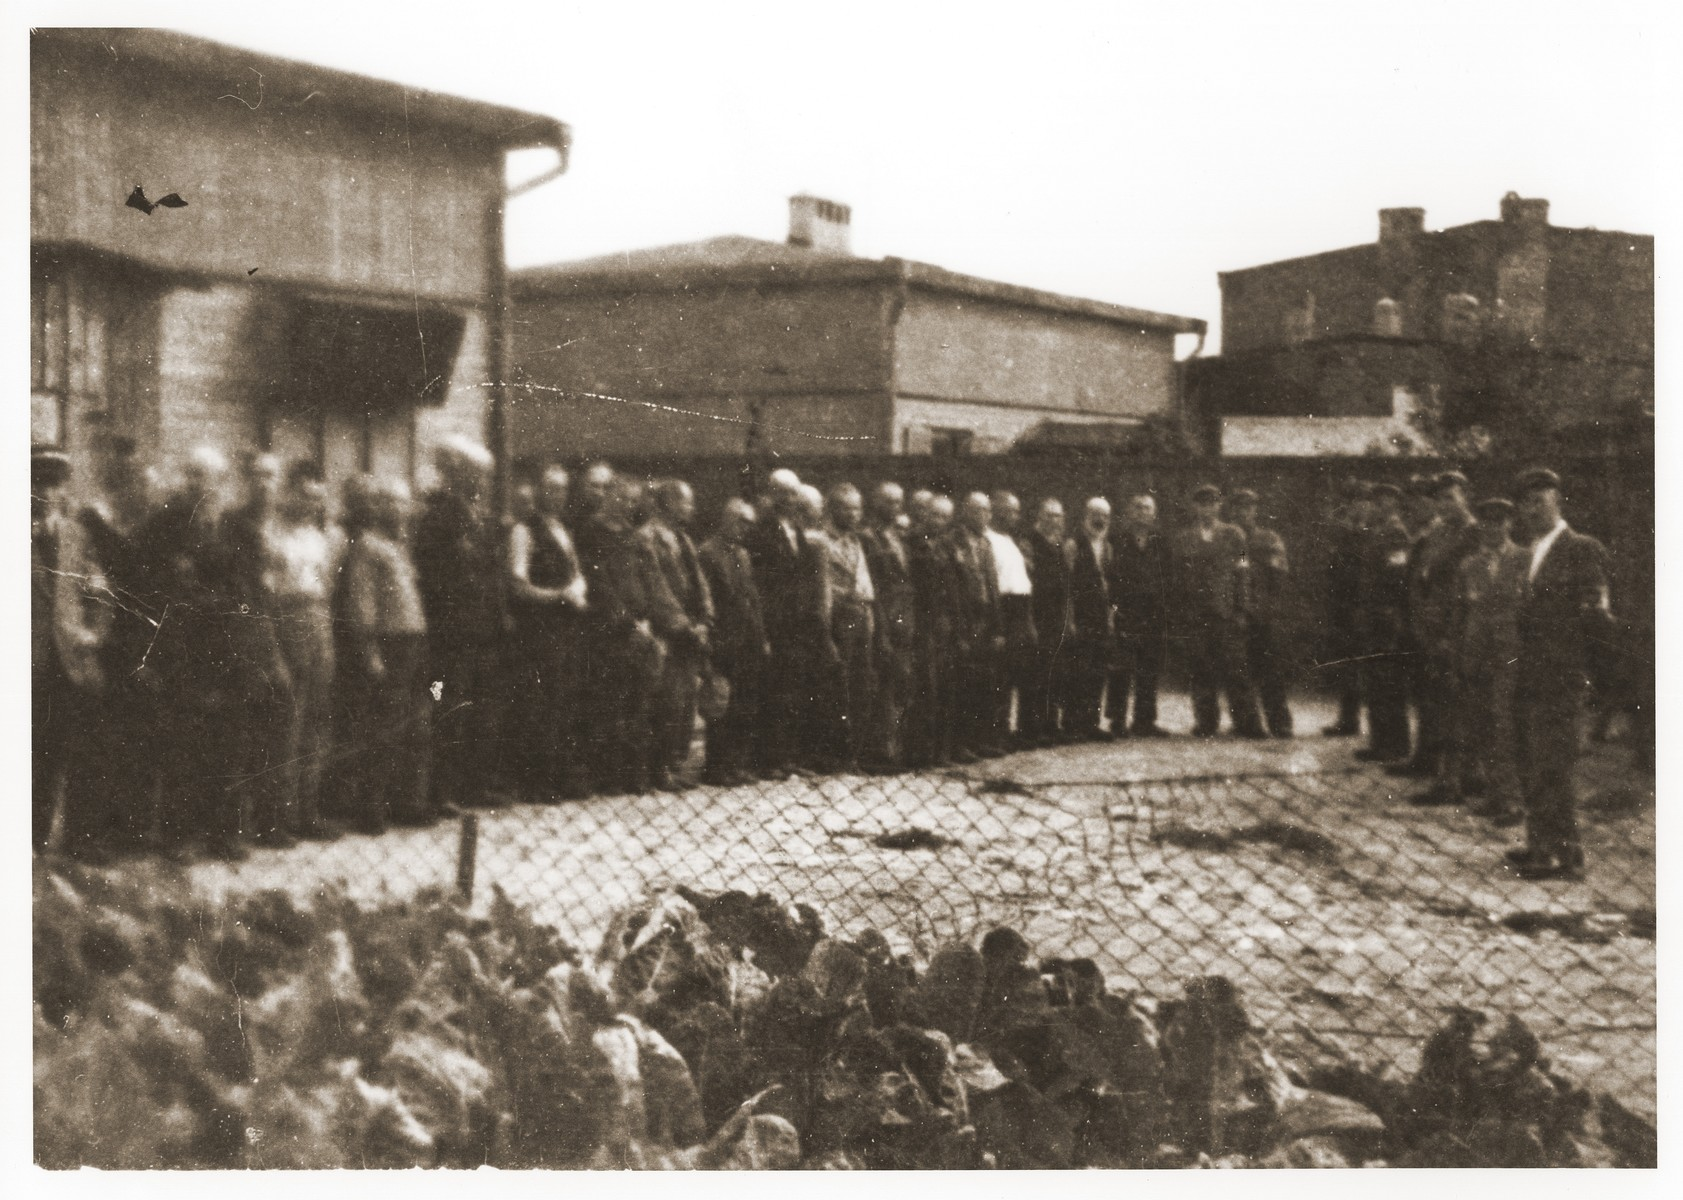 Ghetto police guard a group of Jewish men who have been lined up in the yard of the central prison of the Lodz ghetto.